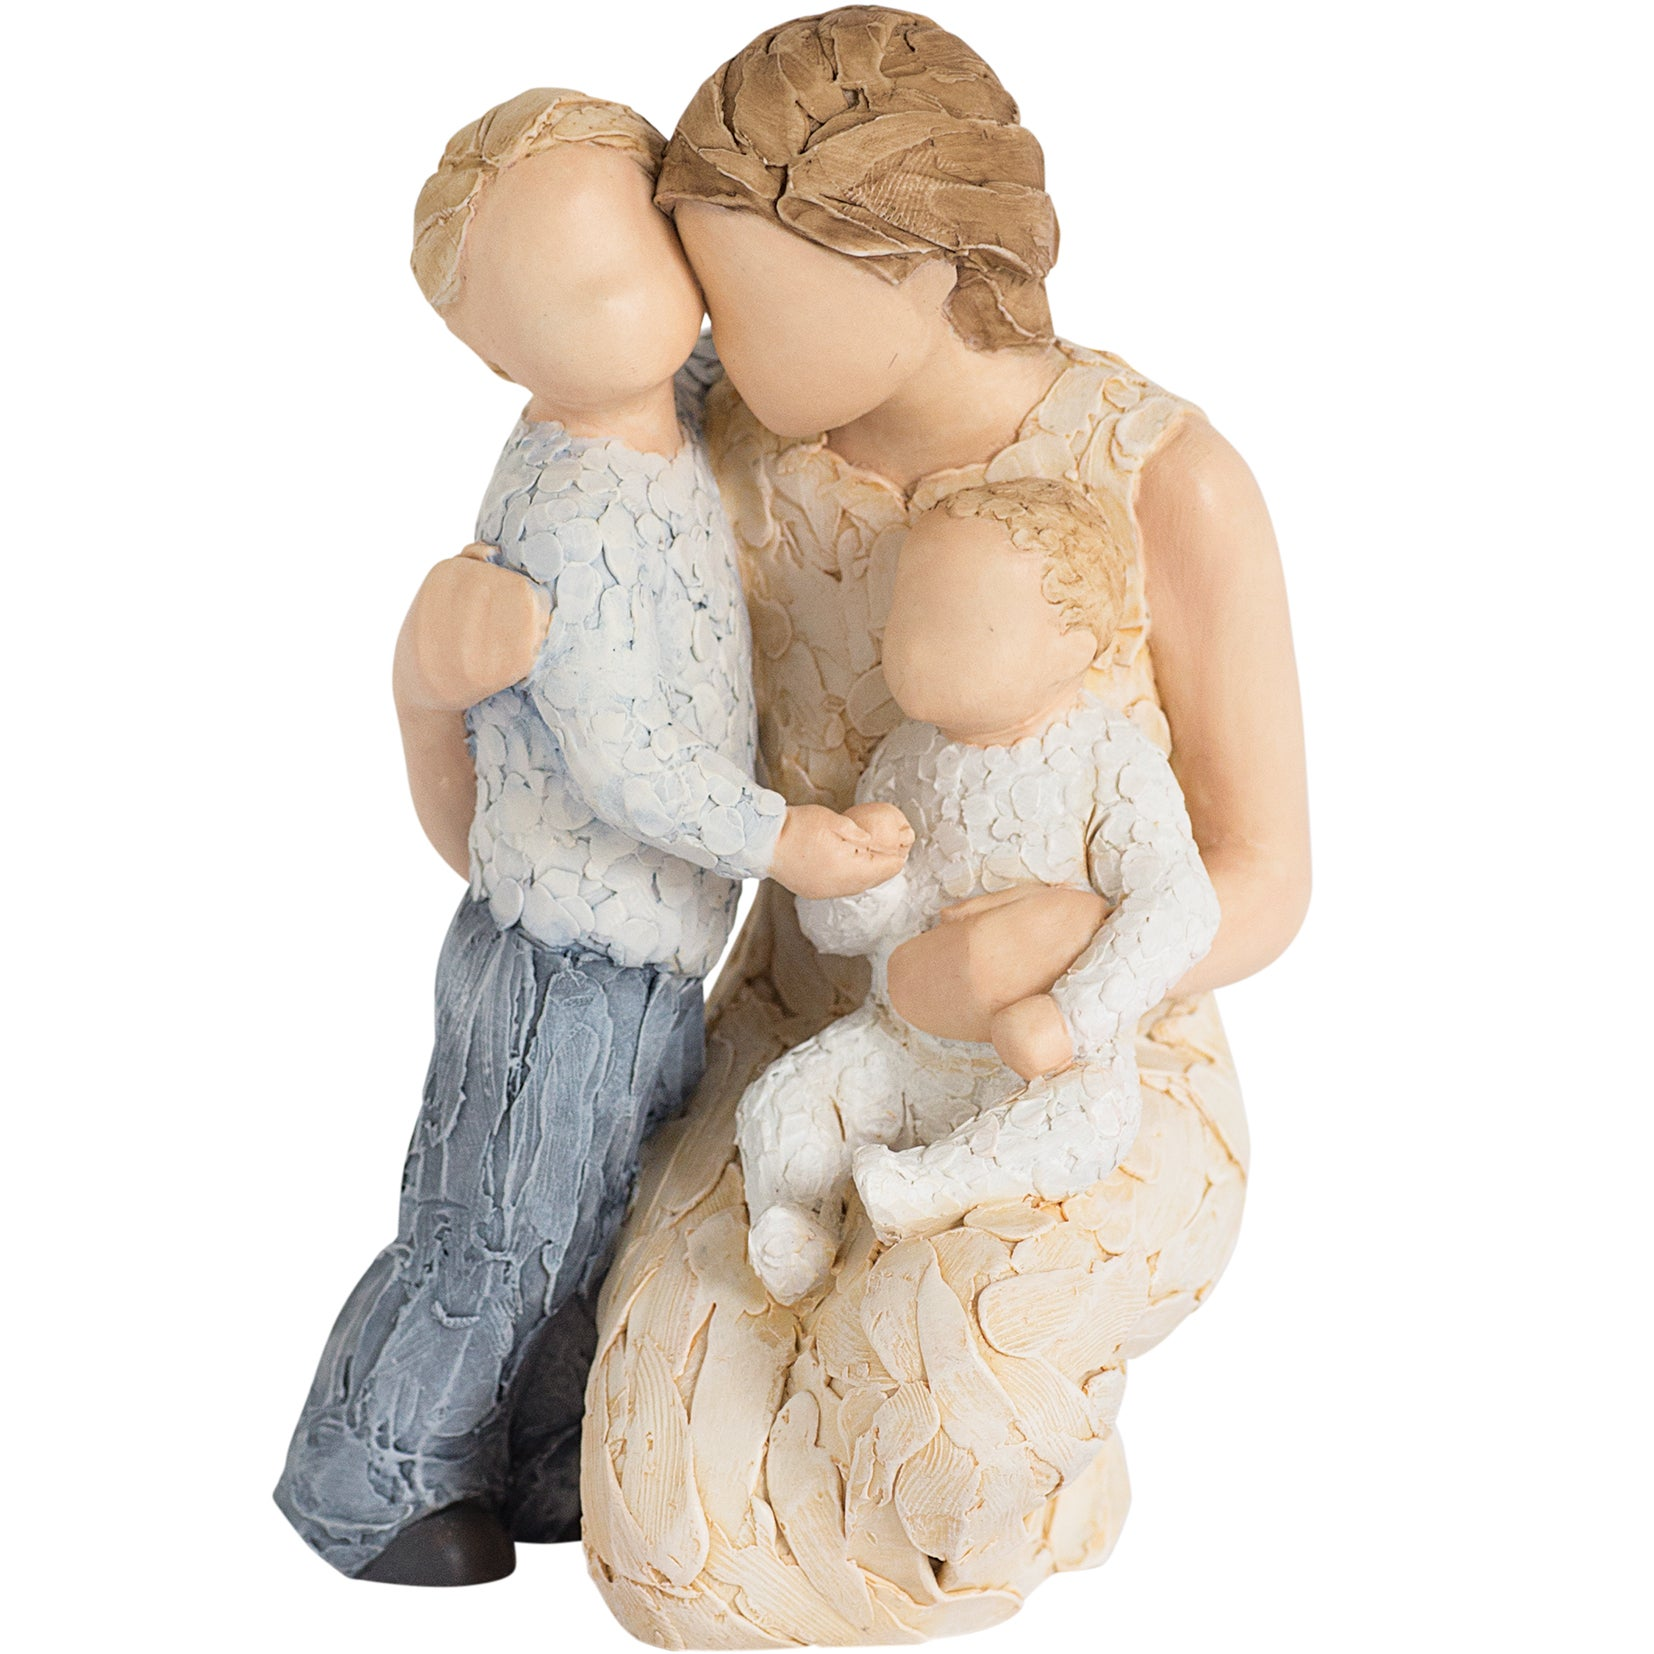 More than Words Figurines Contentment